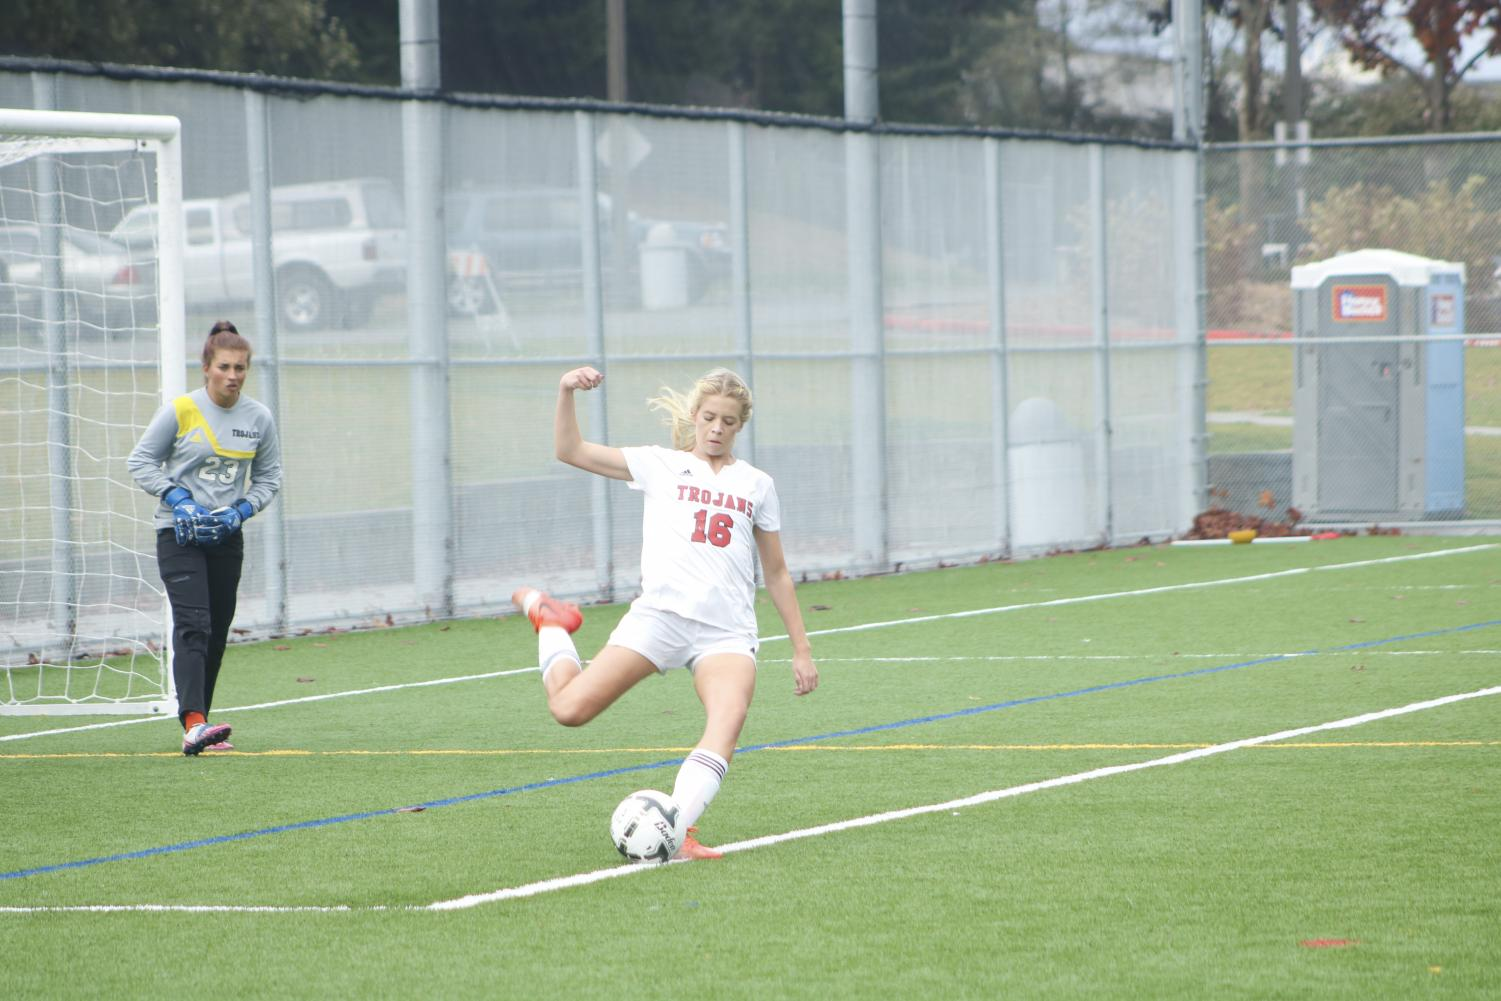 Lindsey Weikel boots the ball down field during Everett's game against Peninsula.